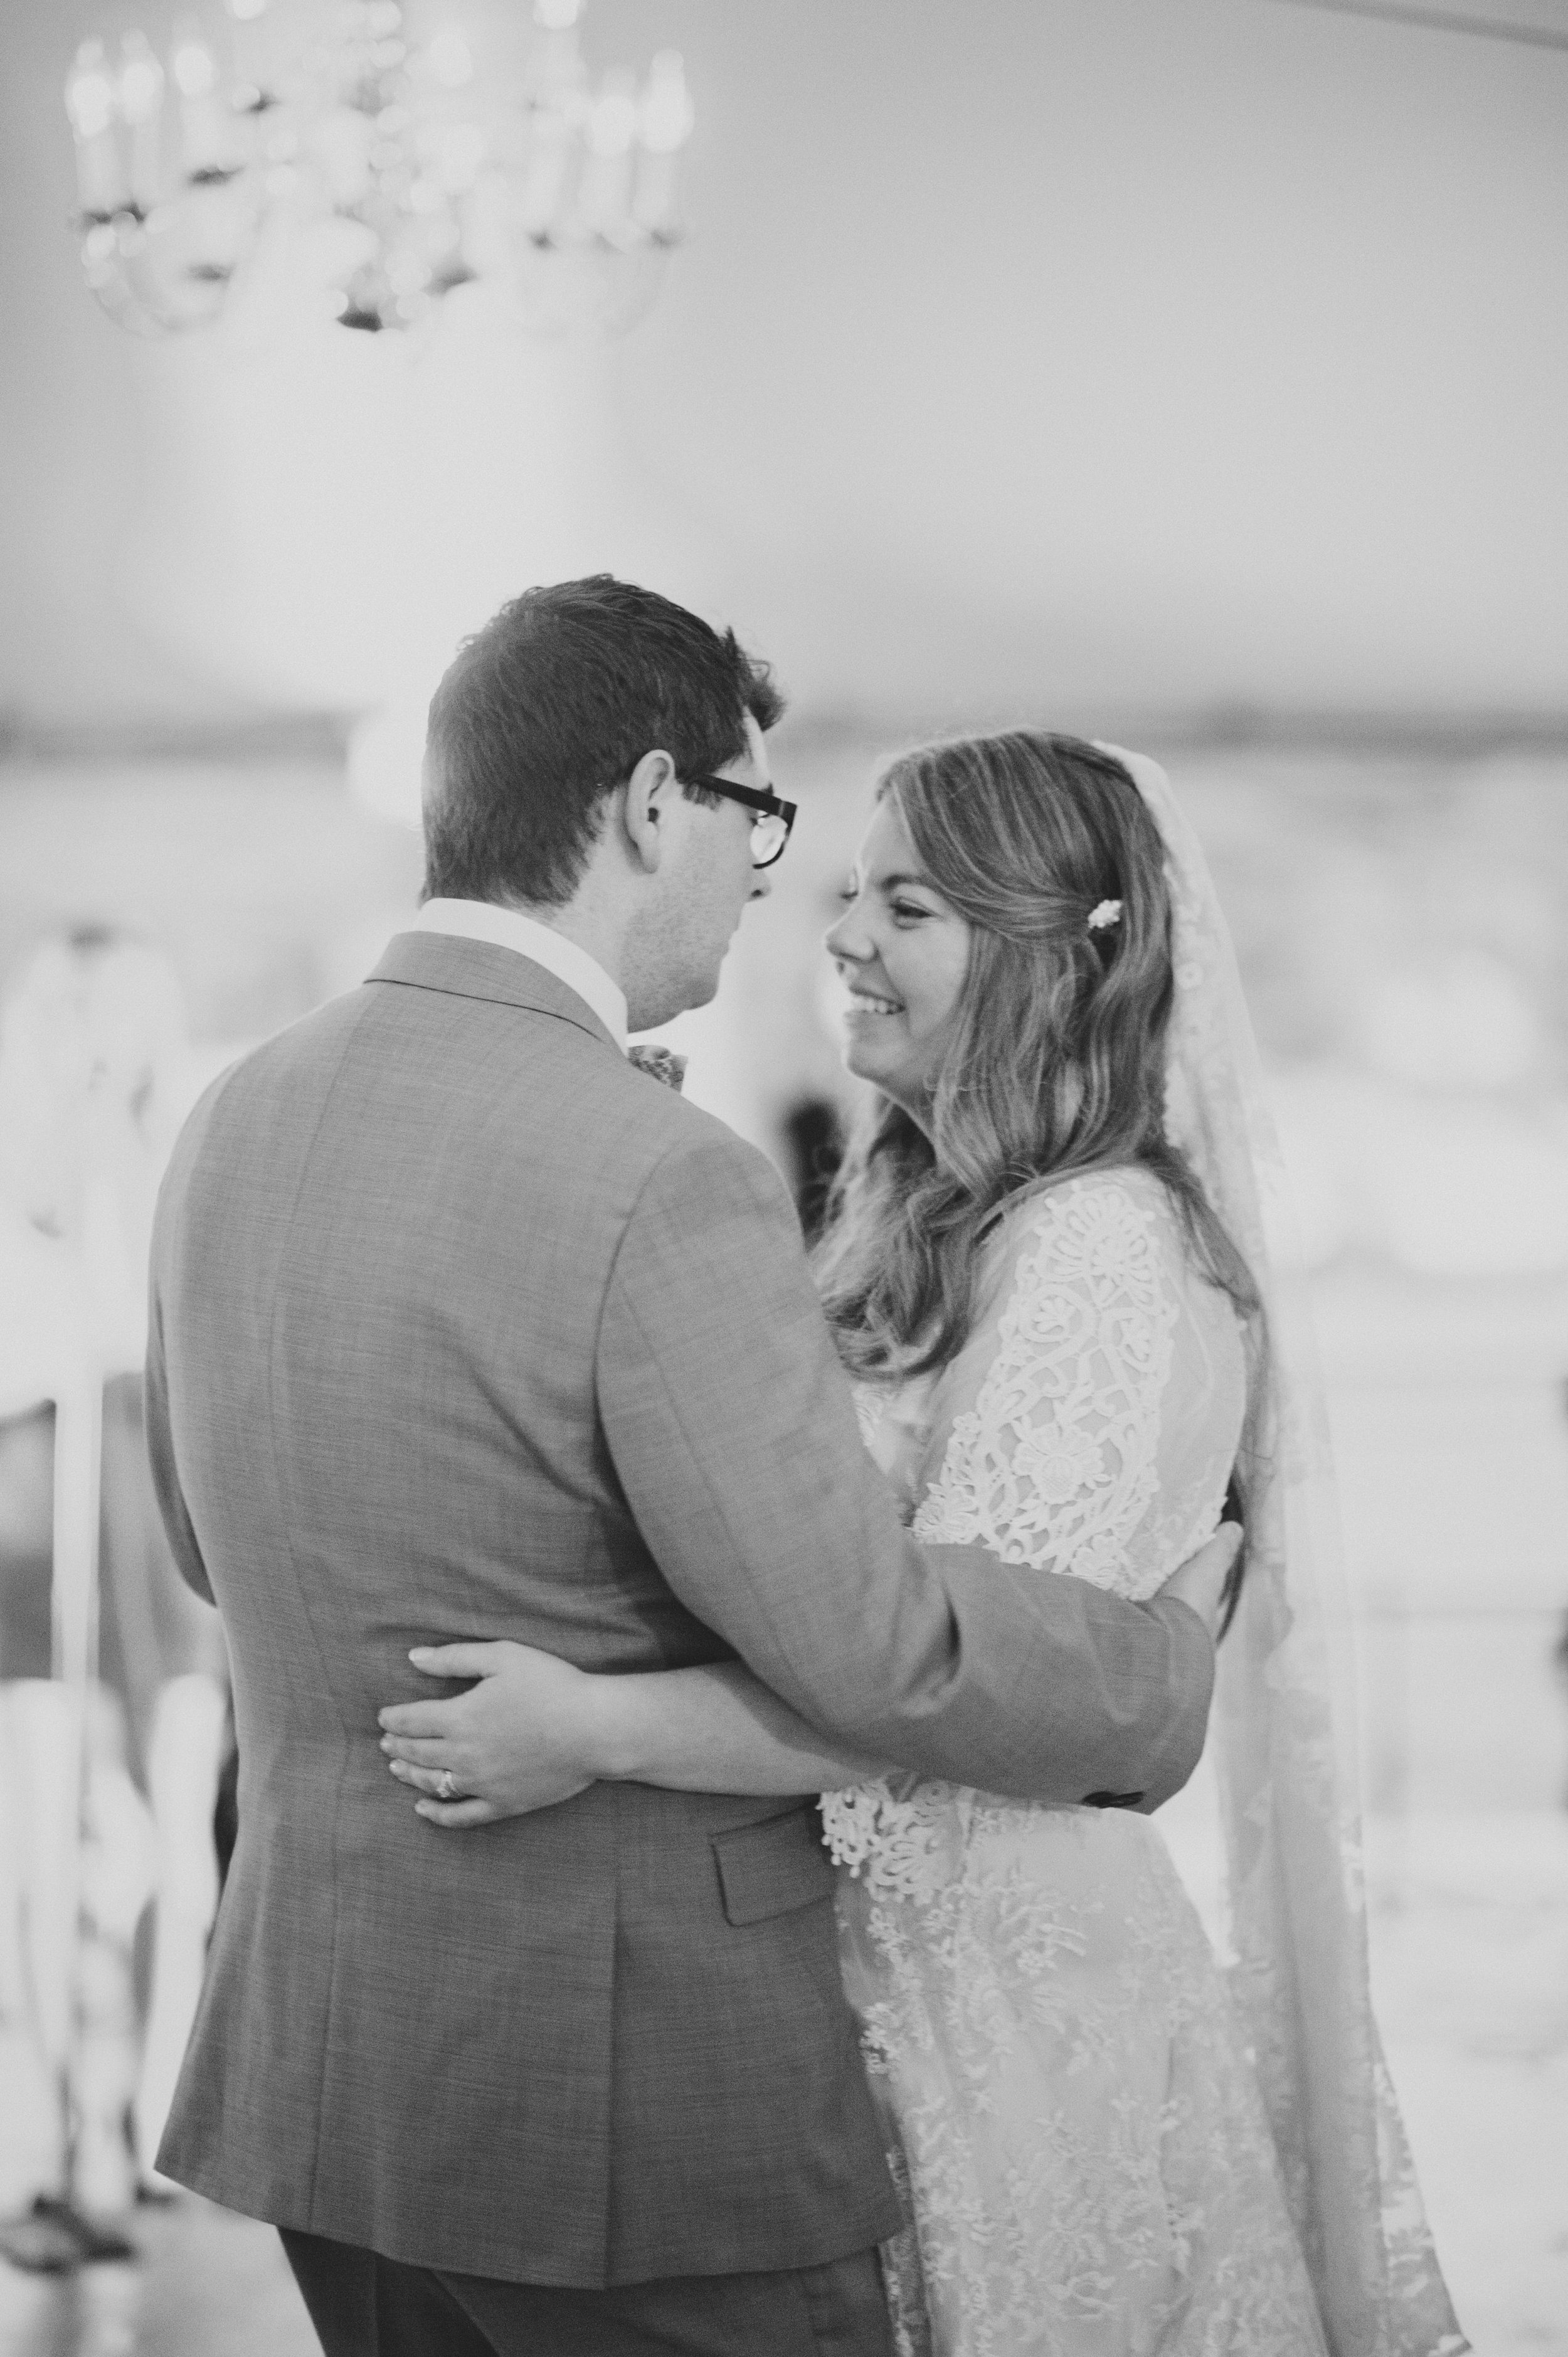 View More: http://christinalilly.pass.us/sean-and-caitlin-by-christina-lilly-photography